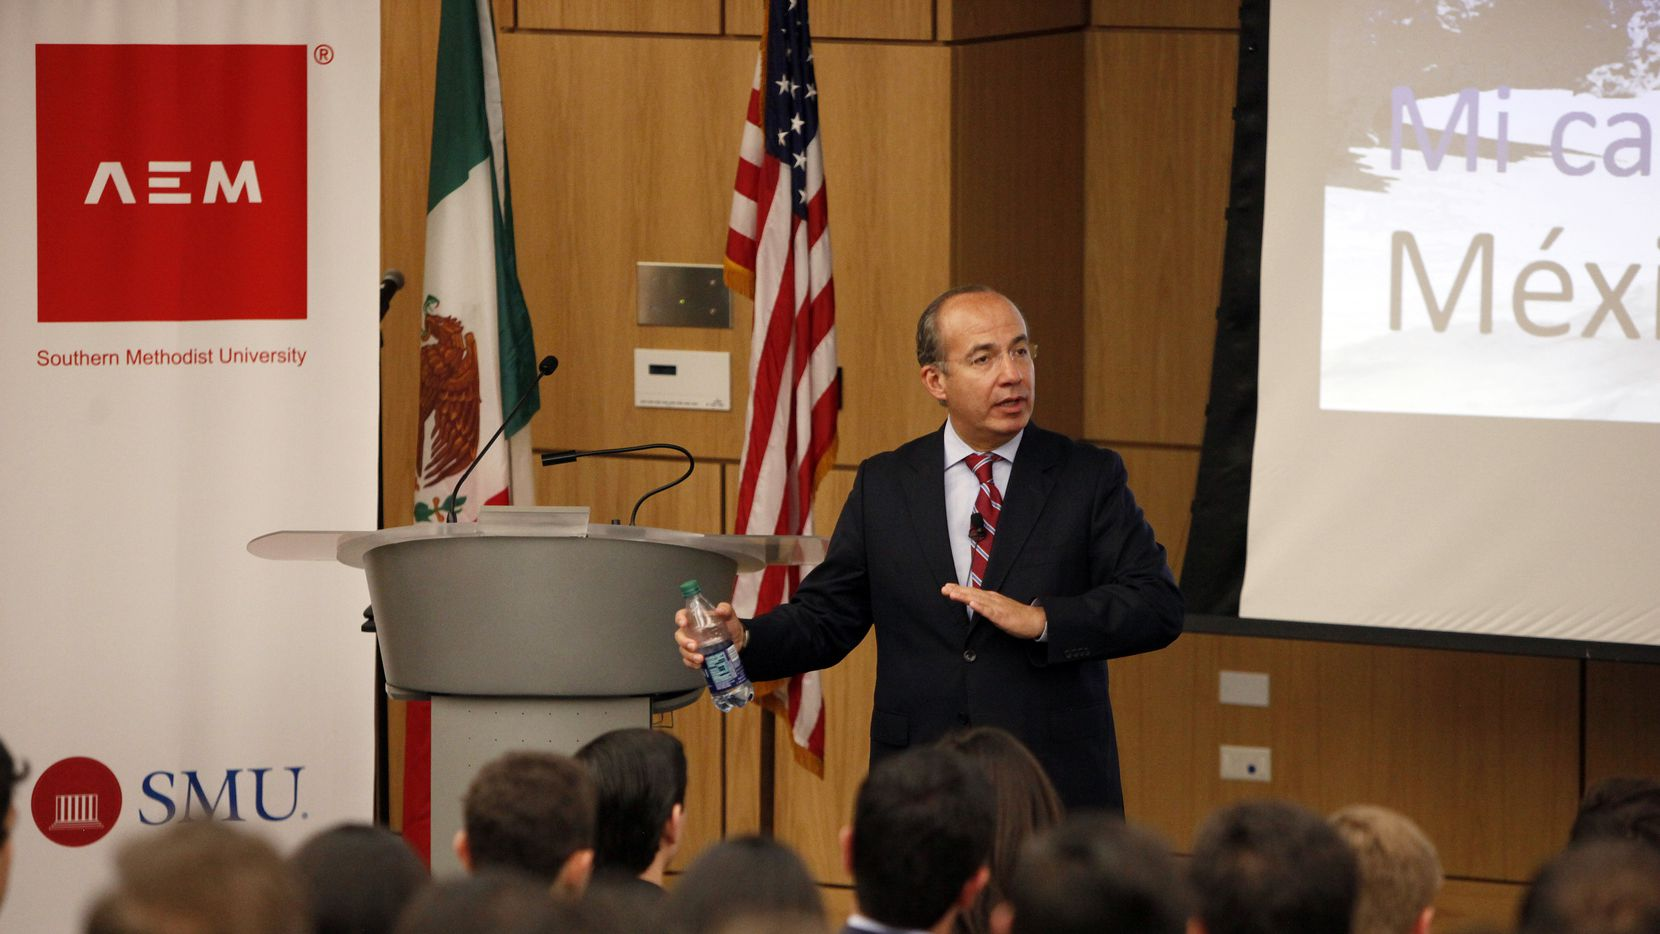 Former Mexican President Felipe Calderon speaks to students and faculty at the Association of Mexican Entrepreneurs (AEM) on the campus of Southern Methodist University in Dallas, Thursday afternoon, March 30, 2017. Ben Torres/Special Contributor